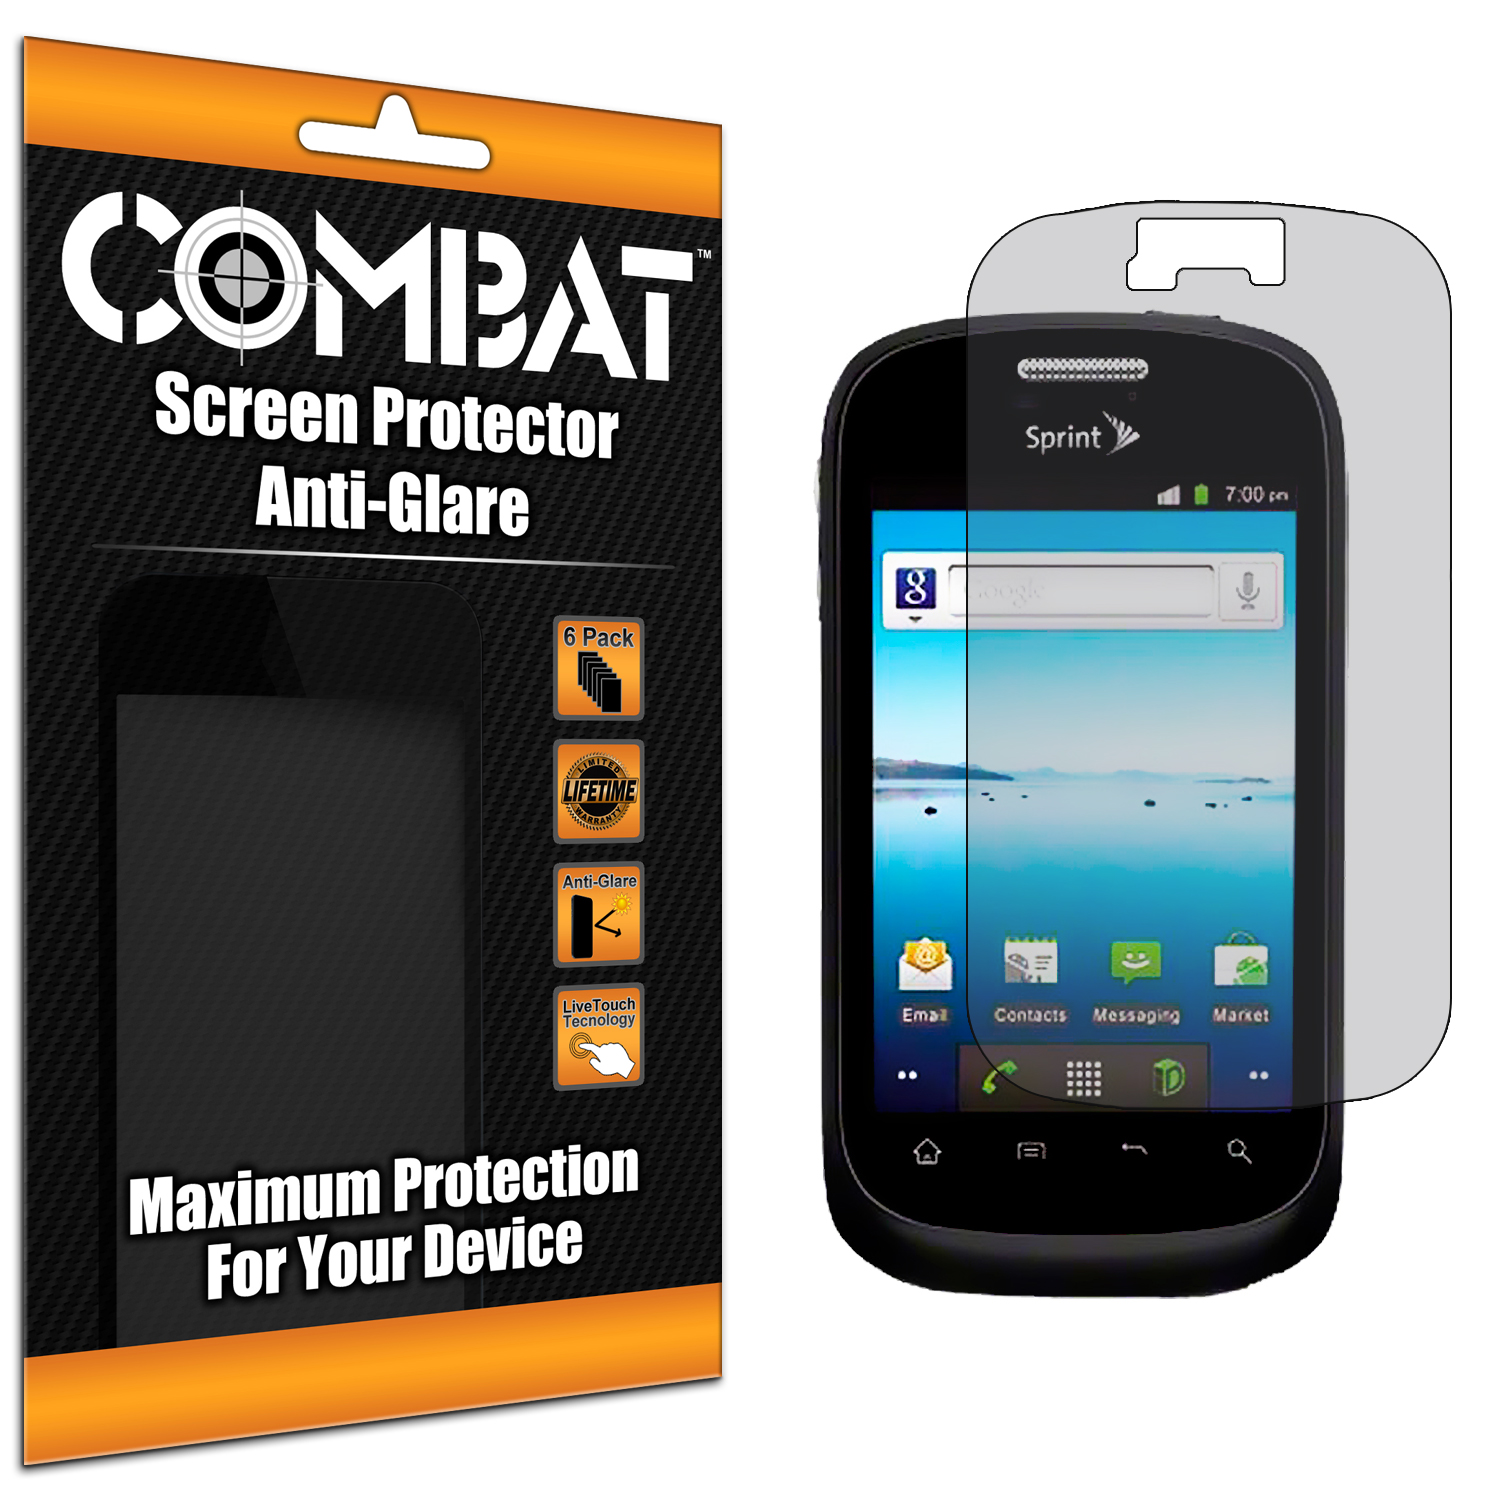 ZTE Fury N850 Combat 6 Pack Anti-Glare Matte Screen Protector